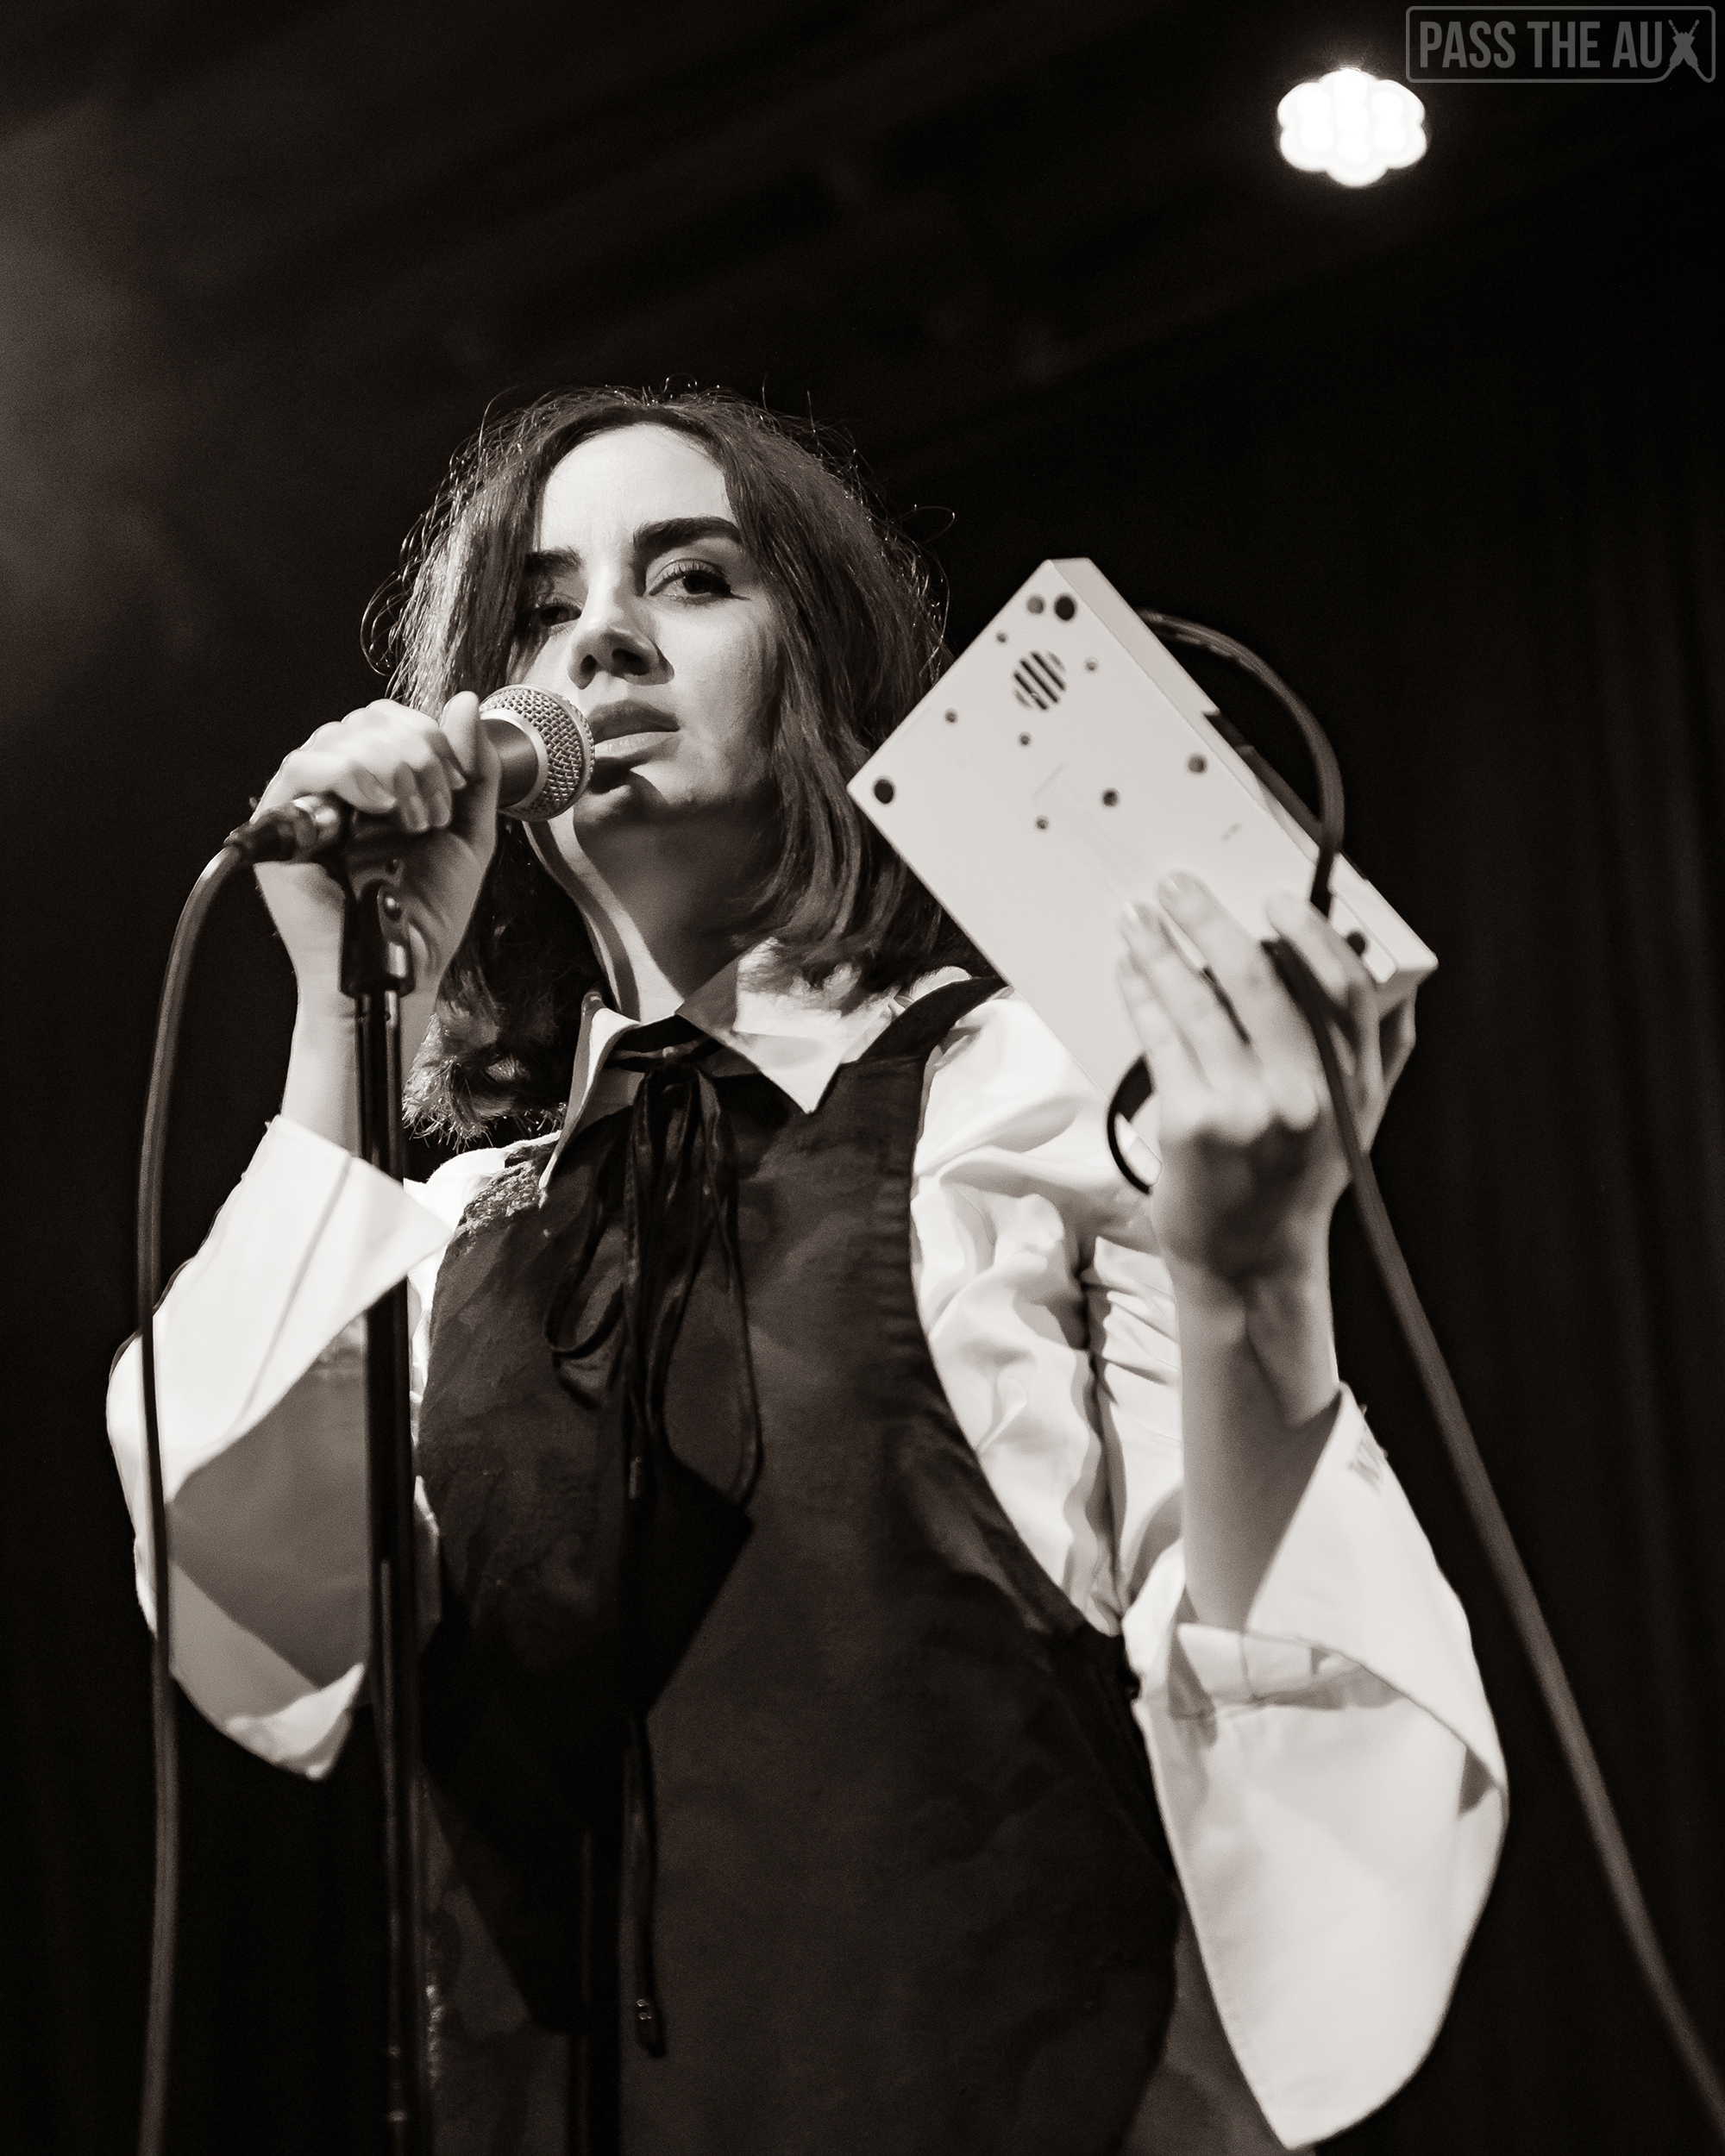 Meg Mac delivers soulful set at Bootleg Bar - Pass The Aux